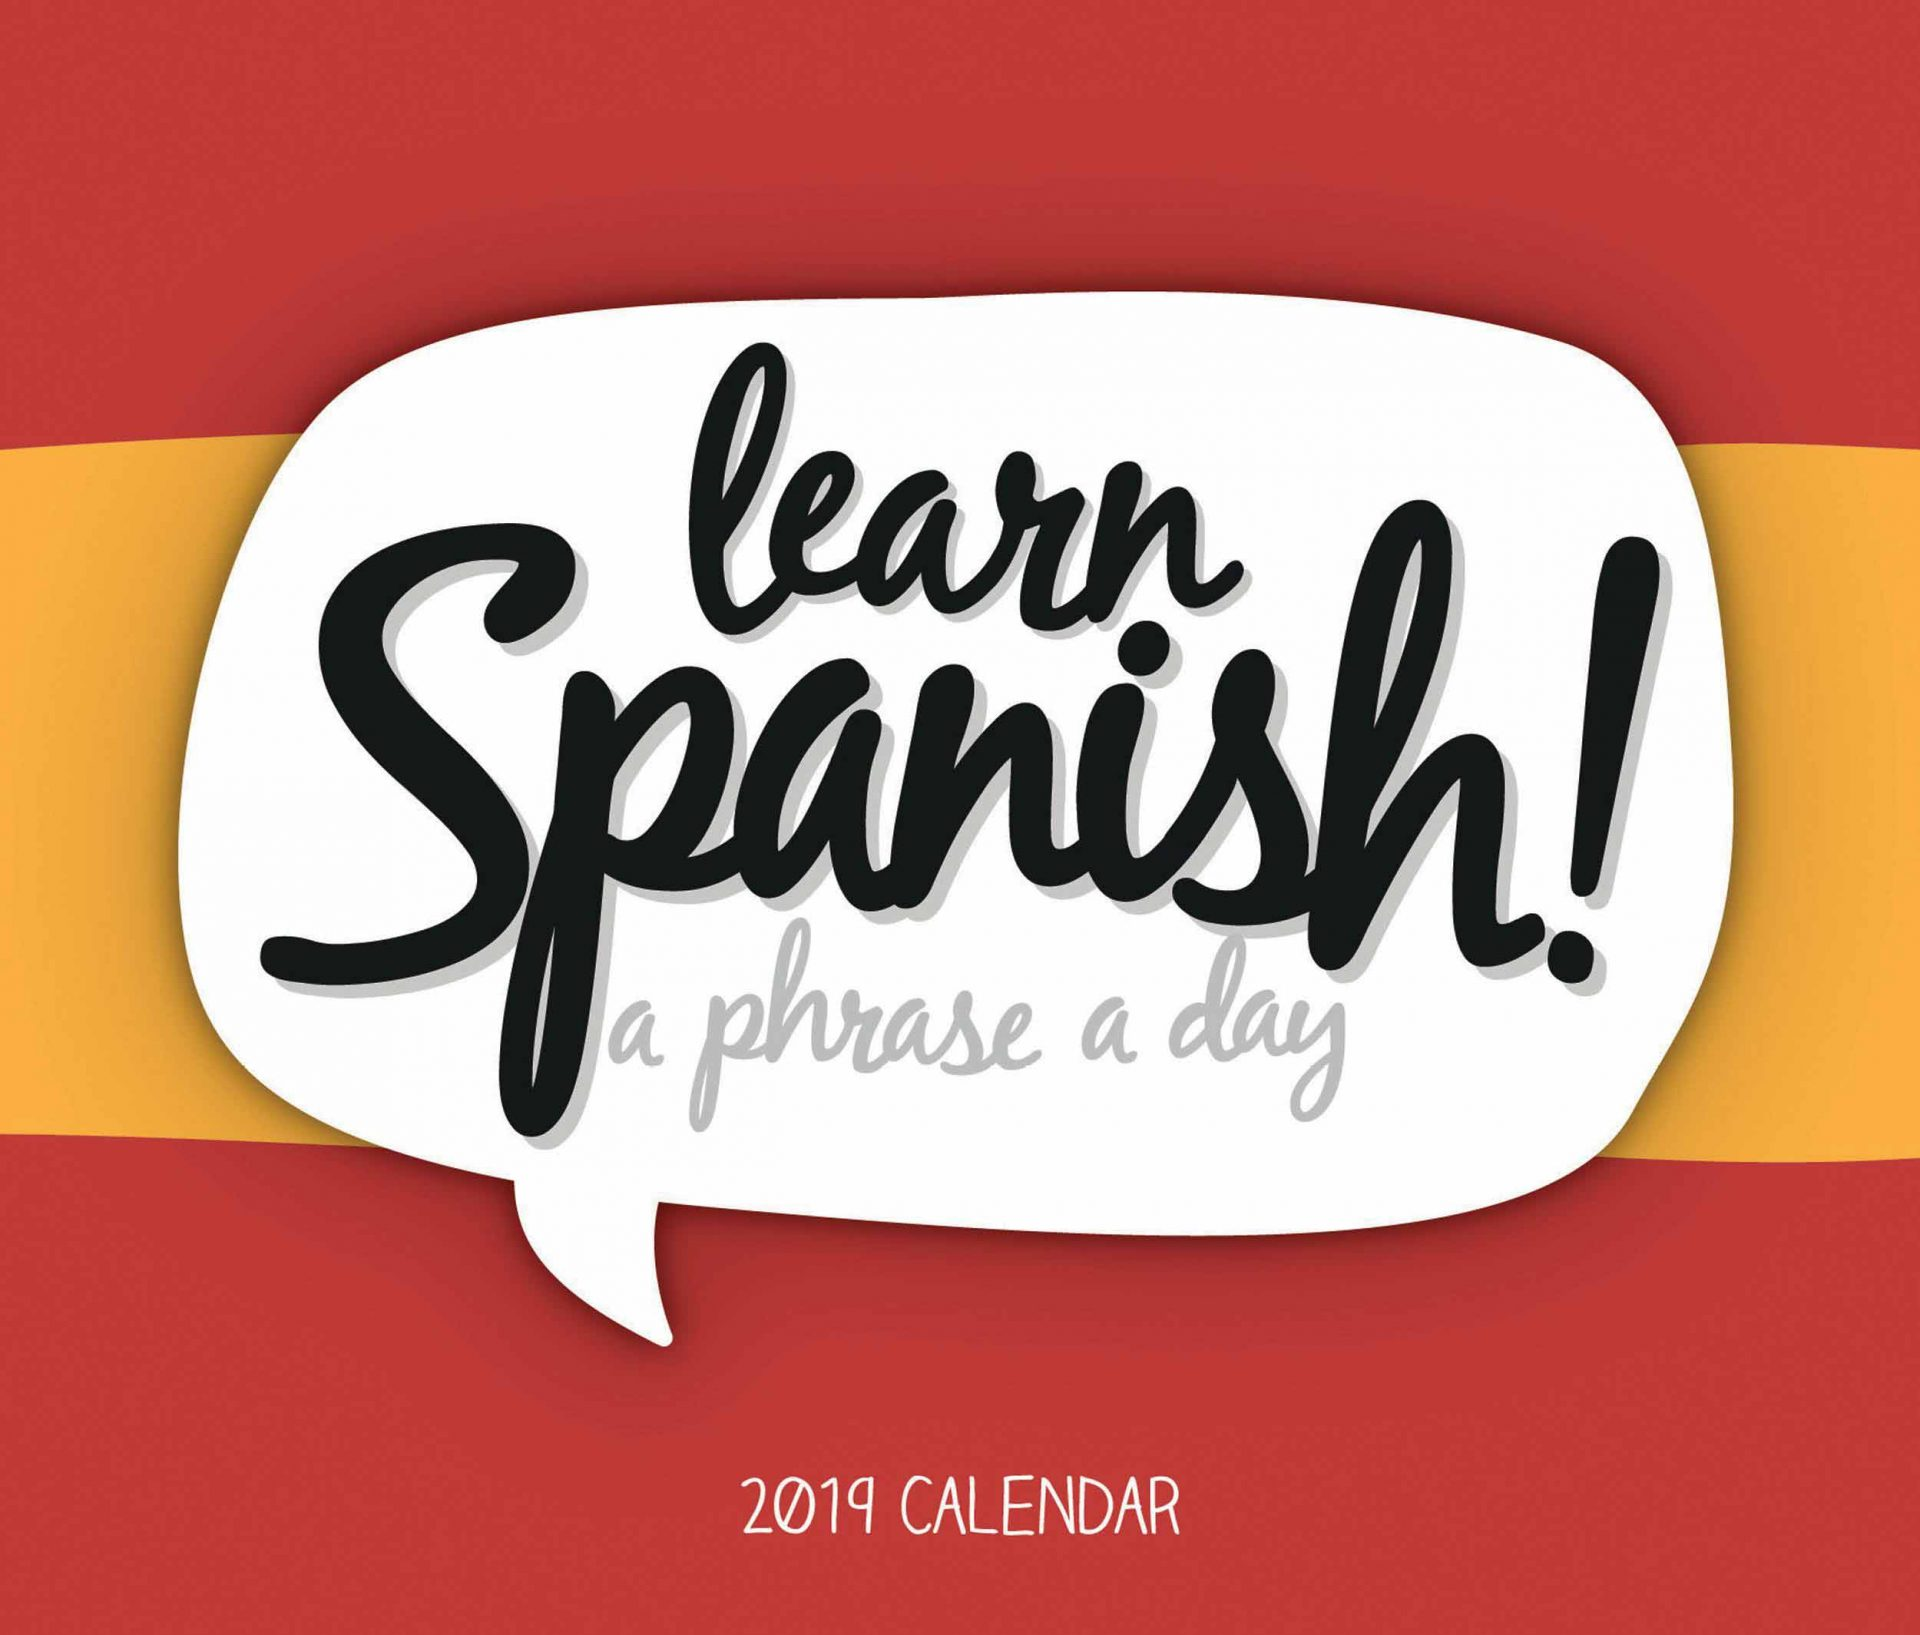 Curso De Español – Level 1